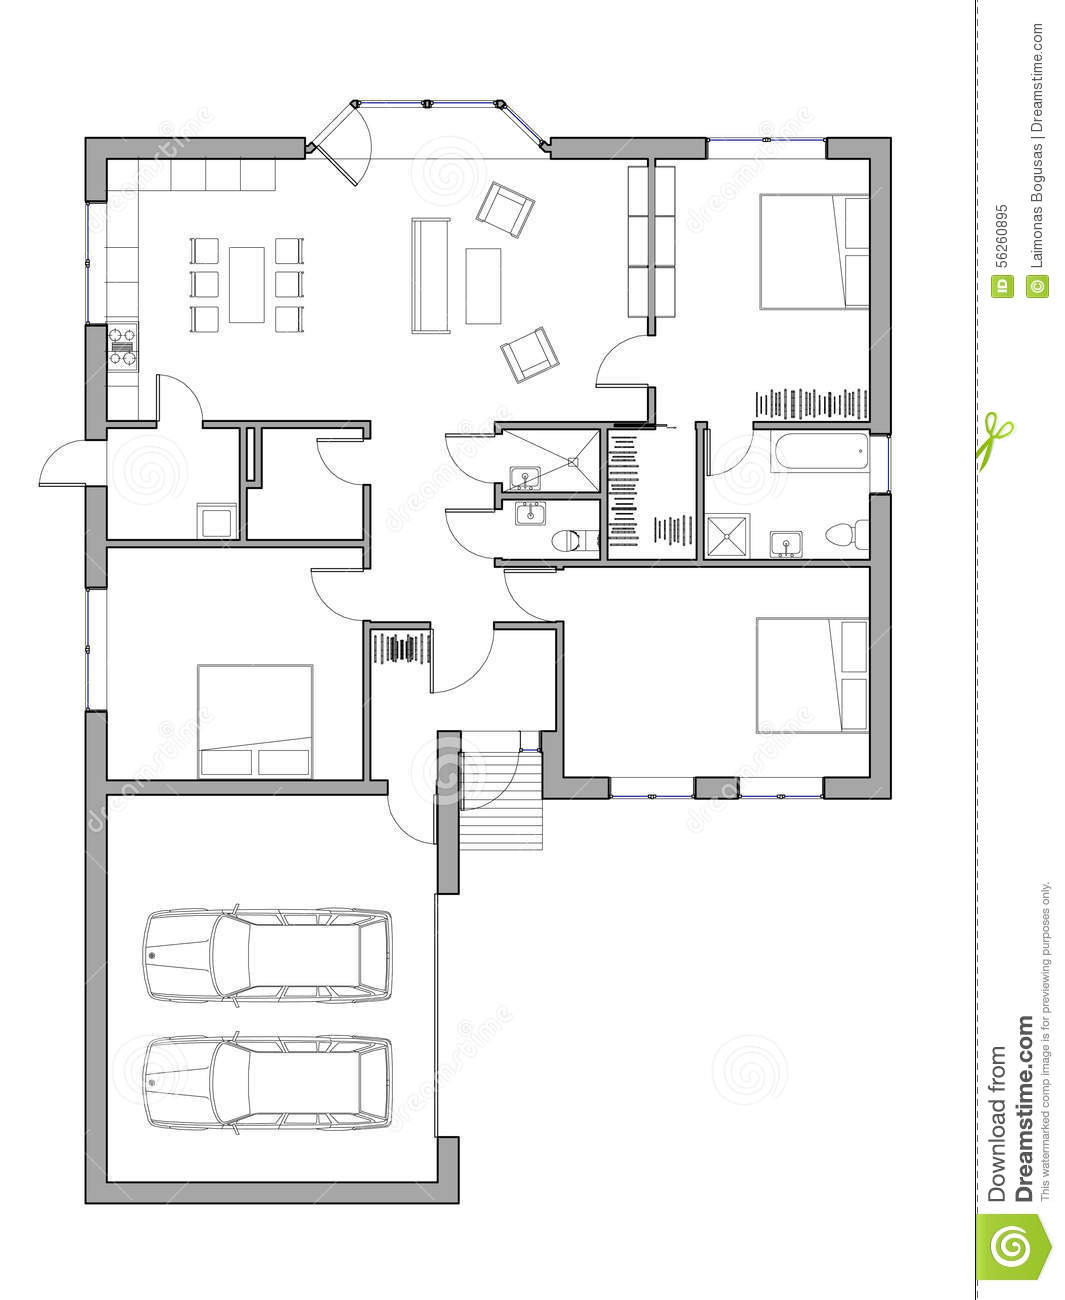 project single family house drawing floor plan